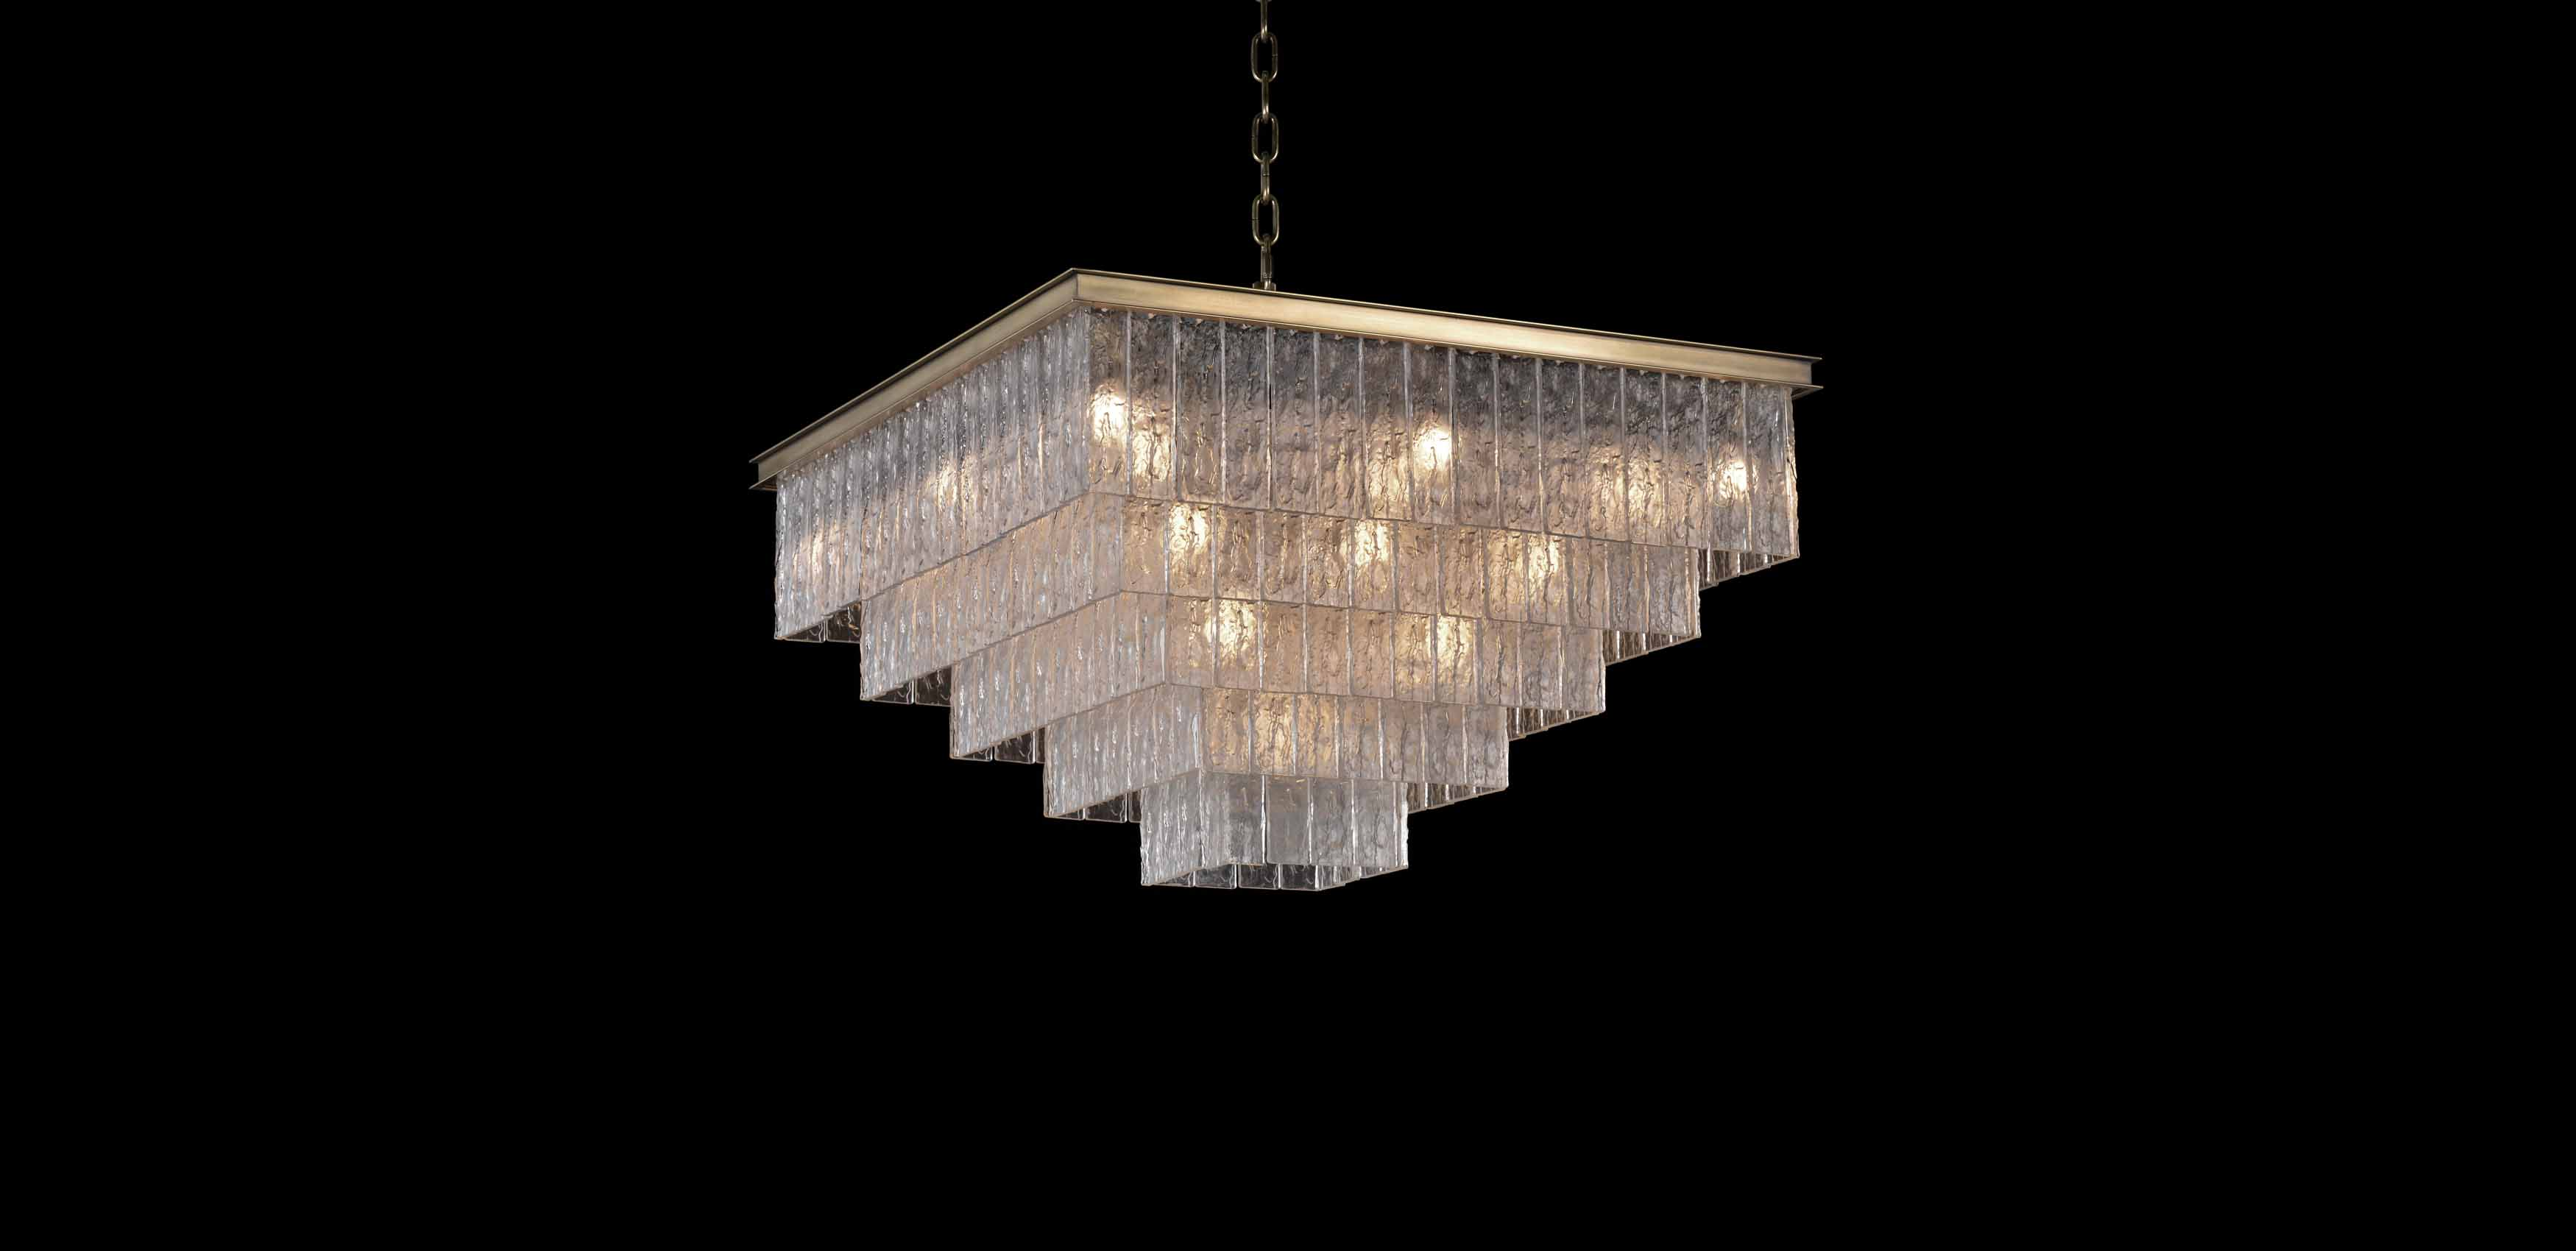 voptics led atria tier chandelier two with adjustable ceilings product white modern image suspension light ceiling continuu wb in cover duo pearlpure and technologies fixture square